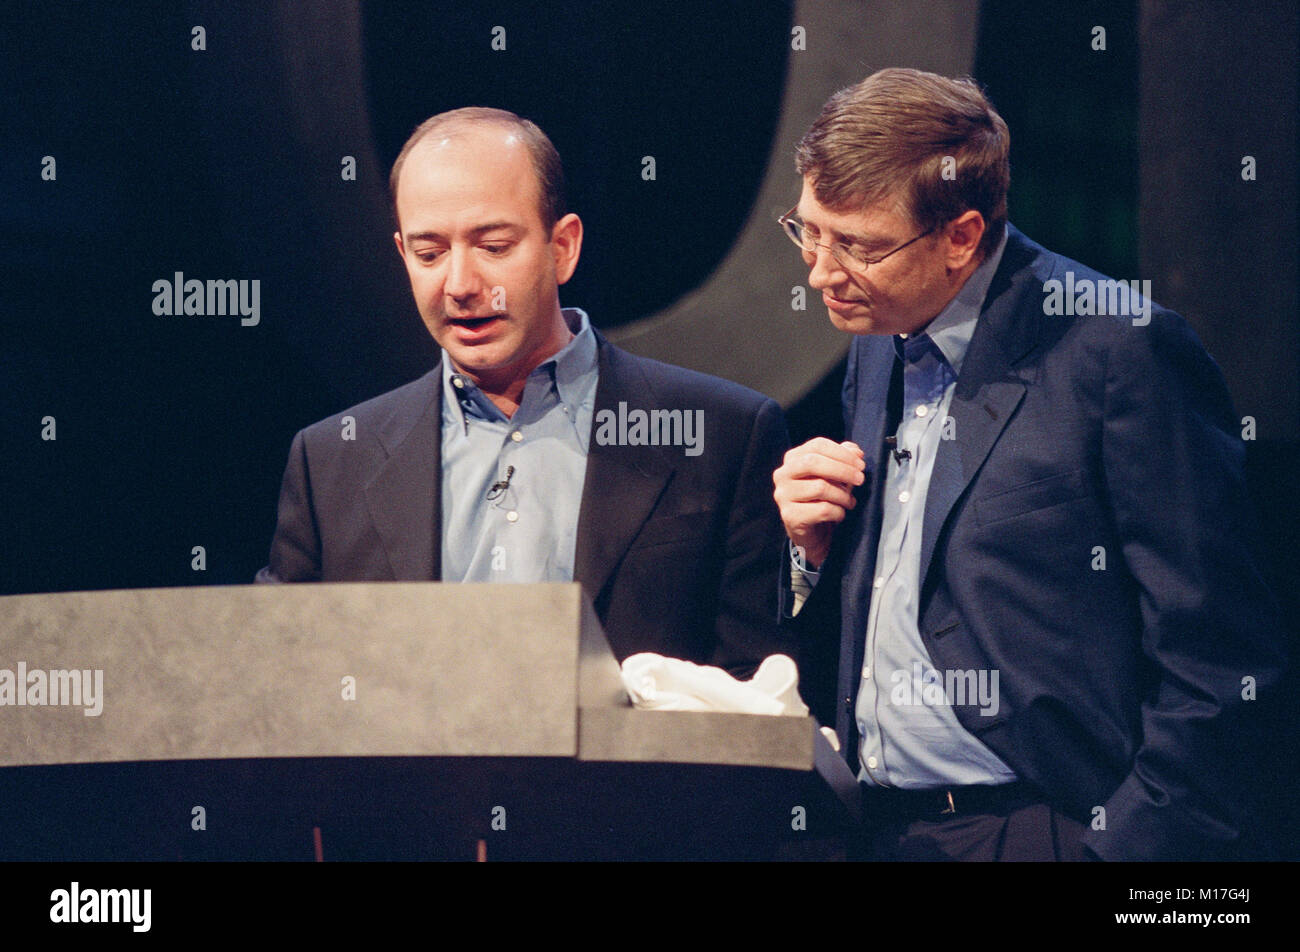 Amazon Com Ceo Jeff Bezos L With Microsoft Ceo Bill Gates R At